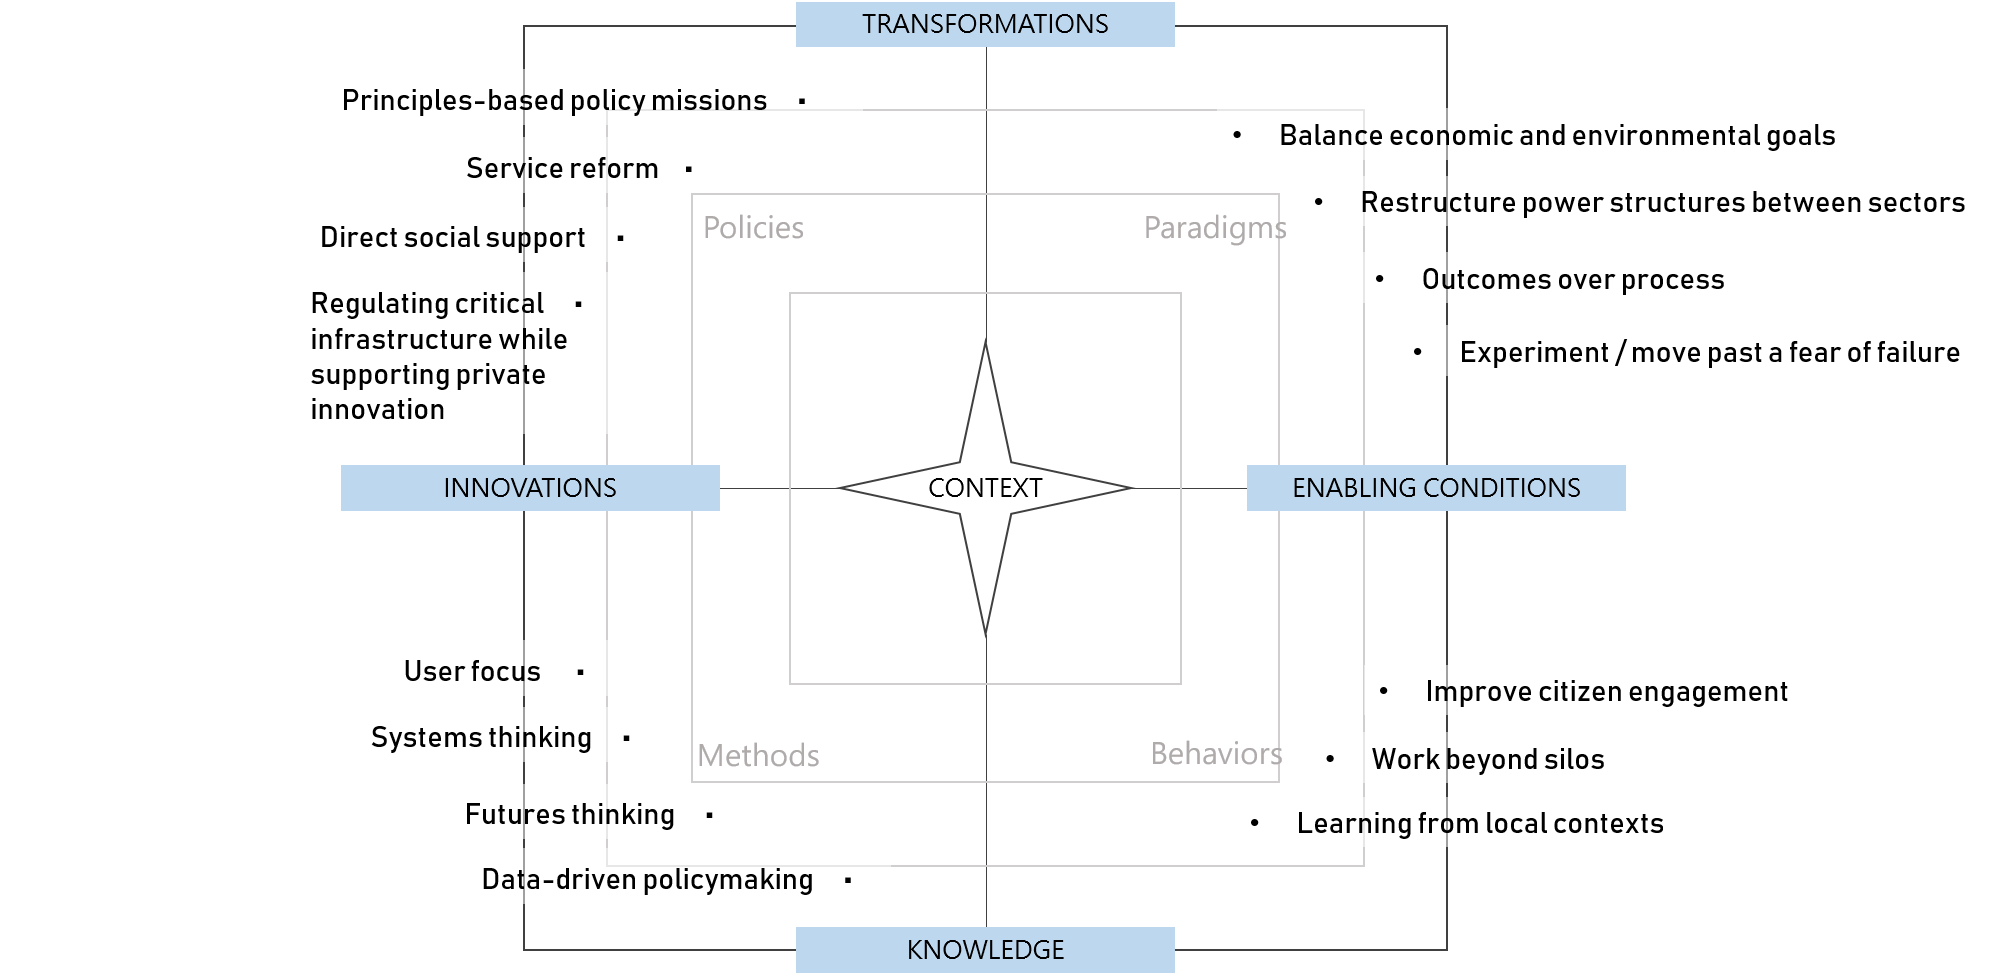 """A map of recommendations: principles-based policy missions, regulating critical infrastructure, service reform, and direct social support fall in the """"Policies"""" area. Balancing economics and environment, restructuring power between sectors, outcomes over process, and experimentation are """"Paradigms."""" Improving citizen engagement, working beyond silos, and learning from local contexts are """"Behaviours."""" User focus, systems thinking, futures thinking, and data-driven policy making are """"Methods."""""""